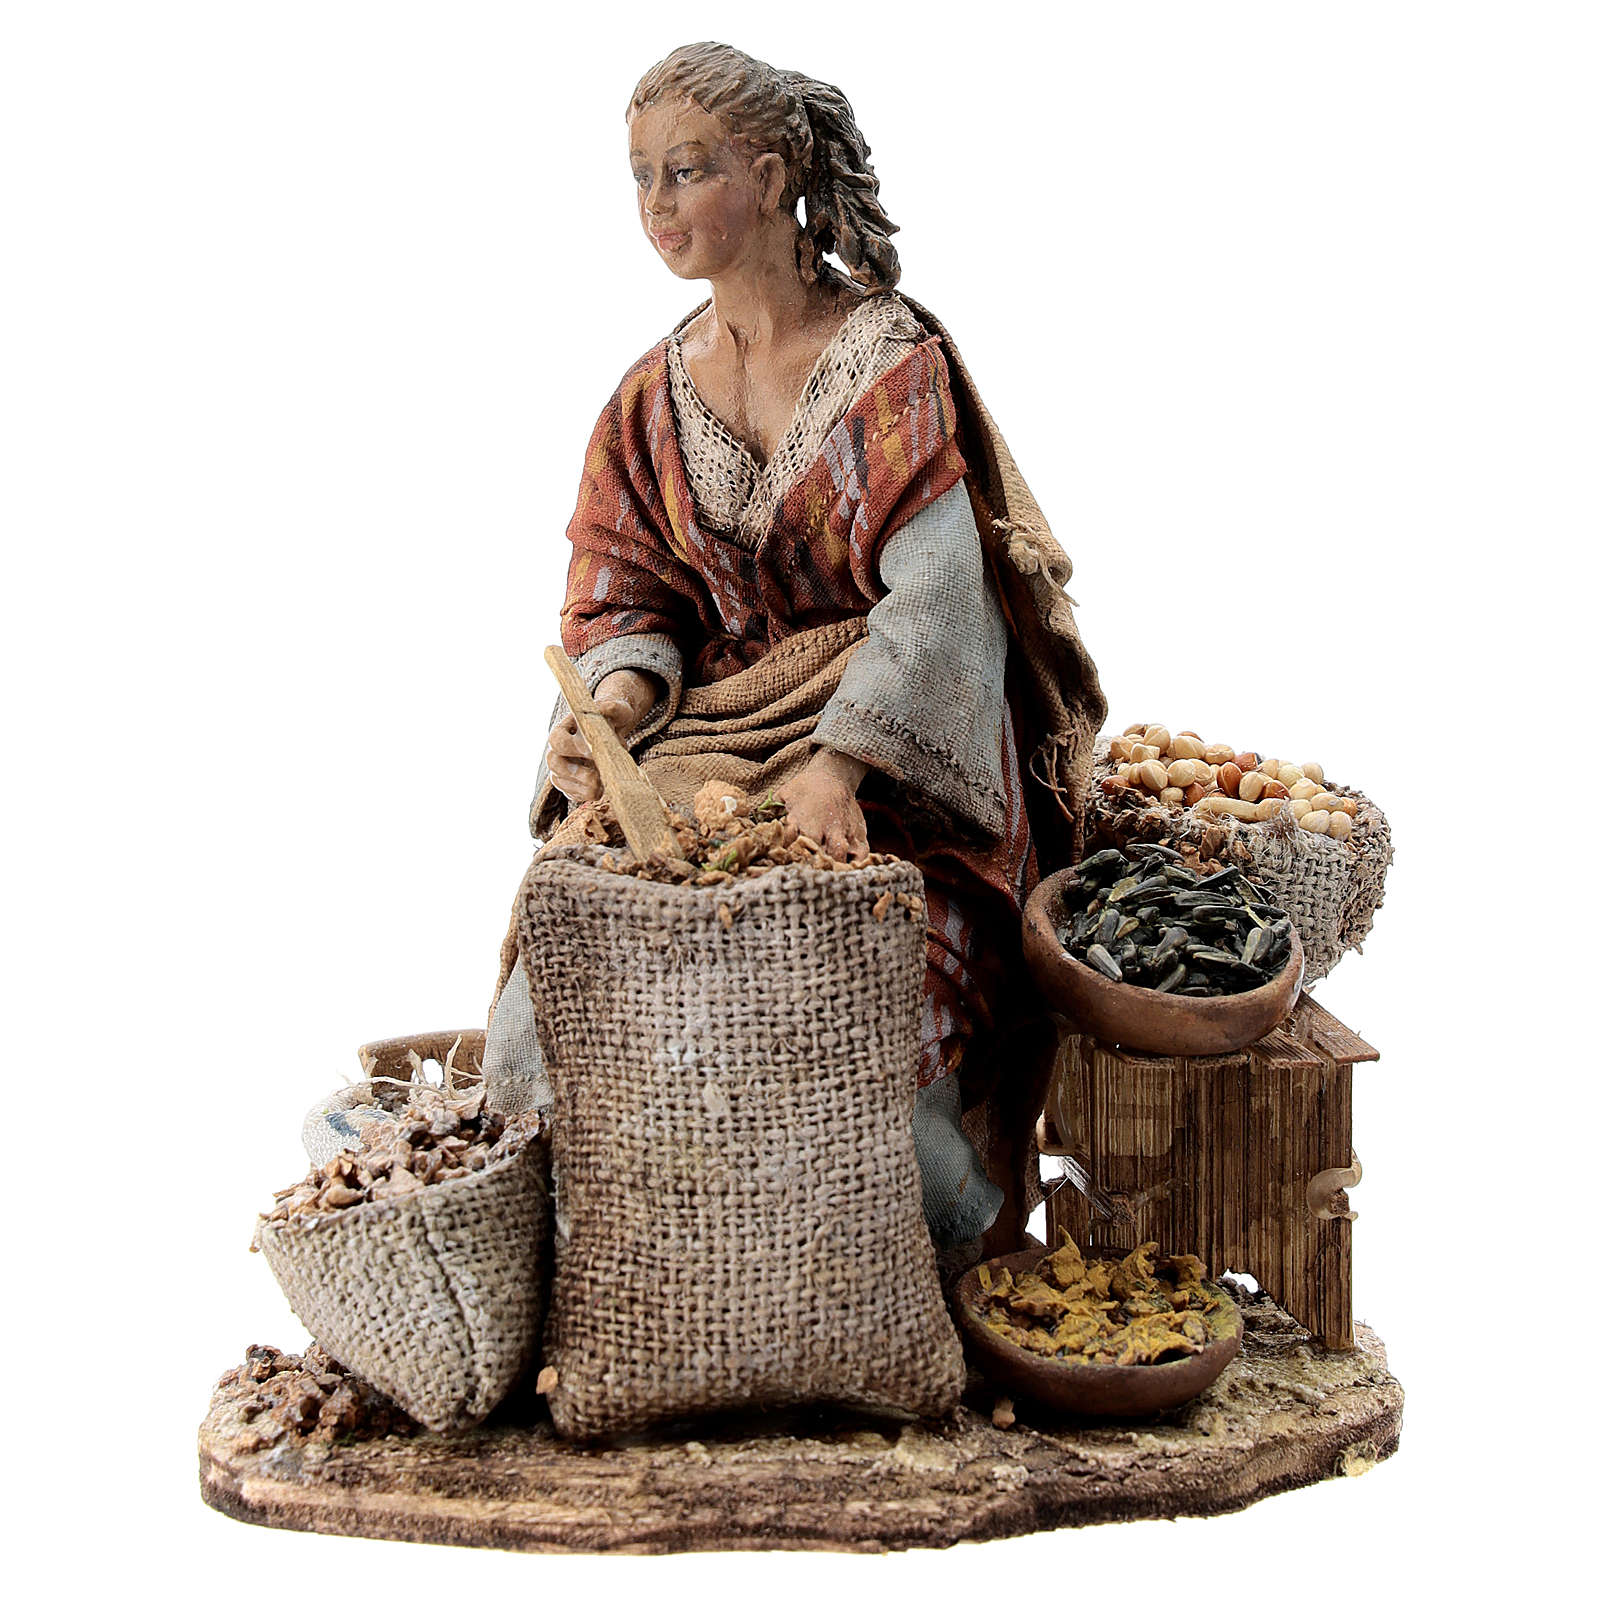 Nativity scene figurine, woman selling spices by Angela Tripi 13 cm 4